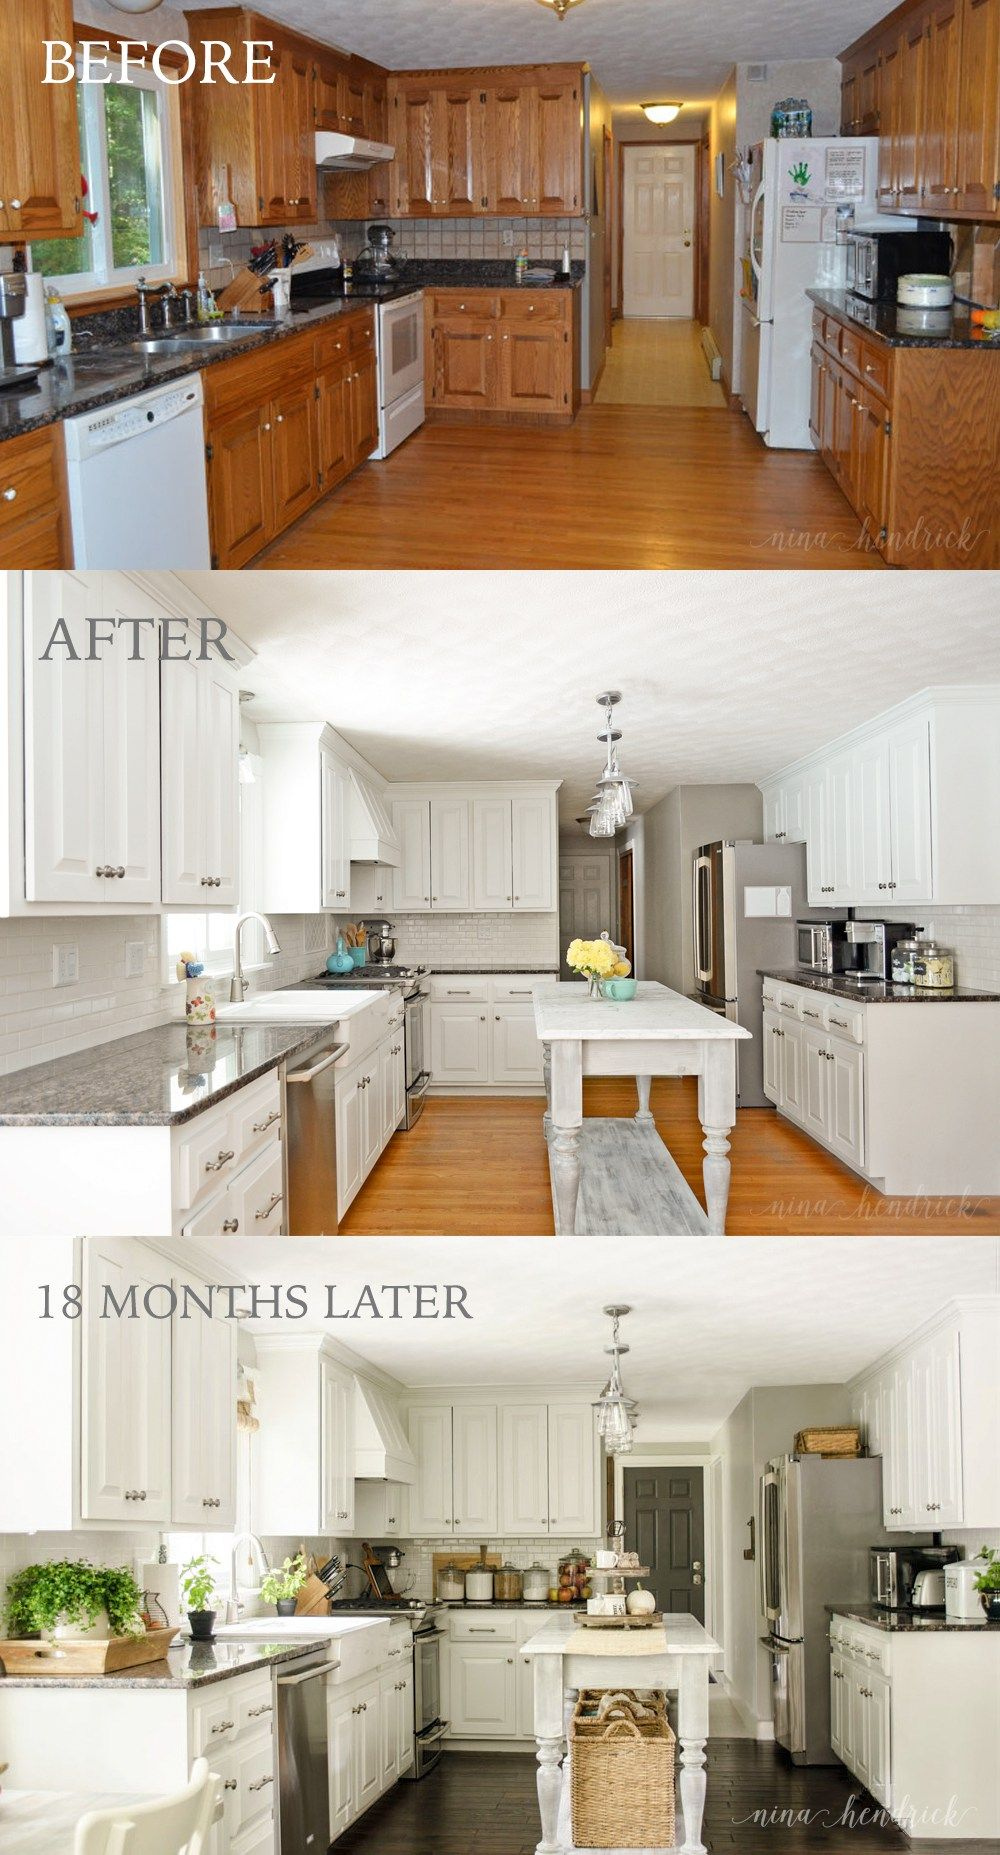 Great White Painted Kitchen Before, After, U0026 18 Months Later By @nina_hendrick